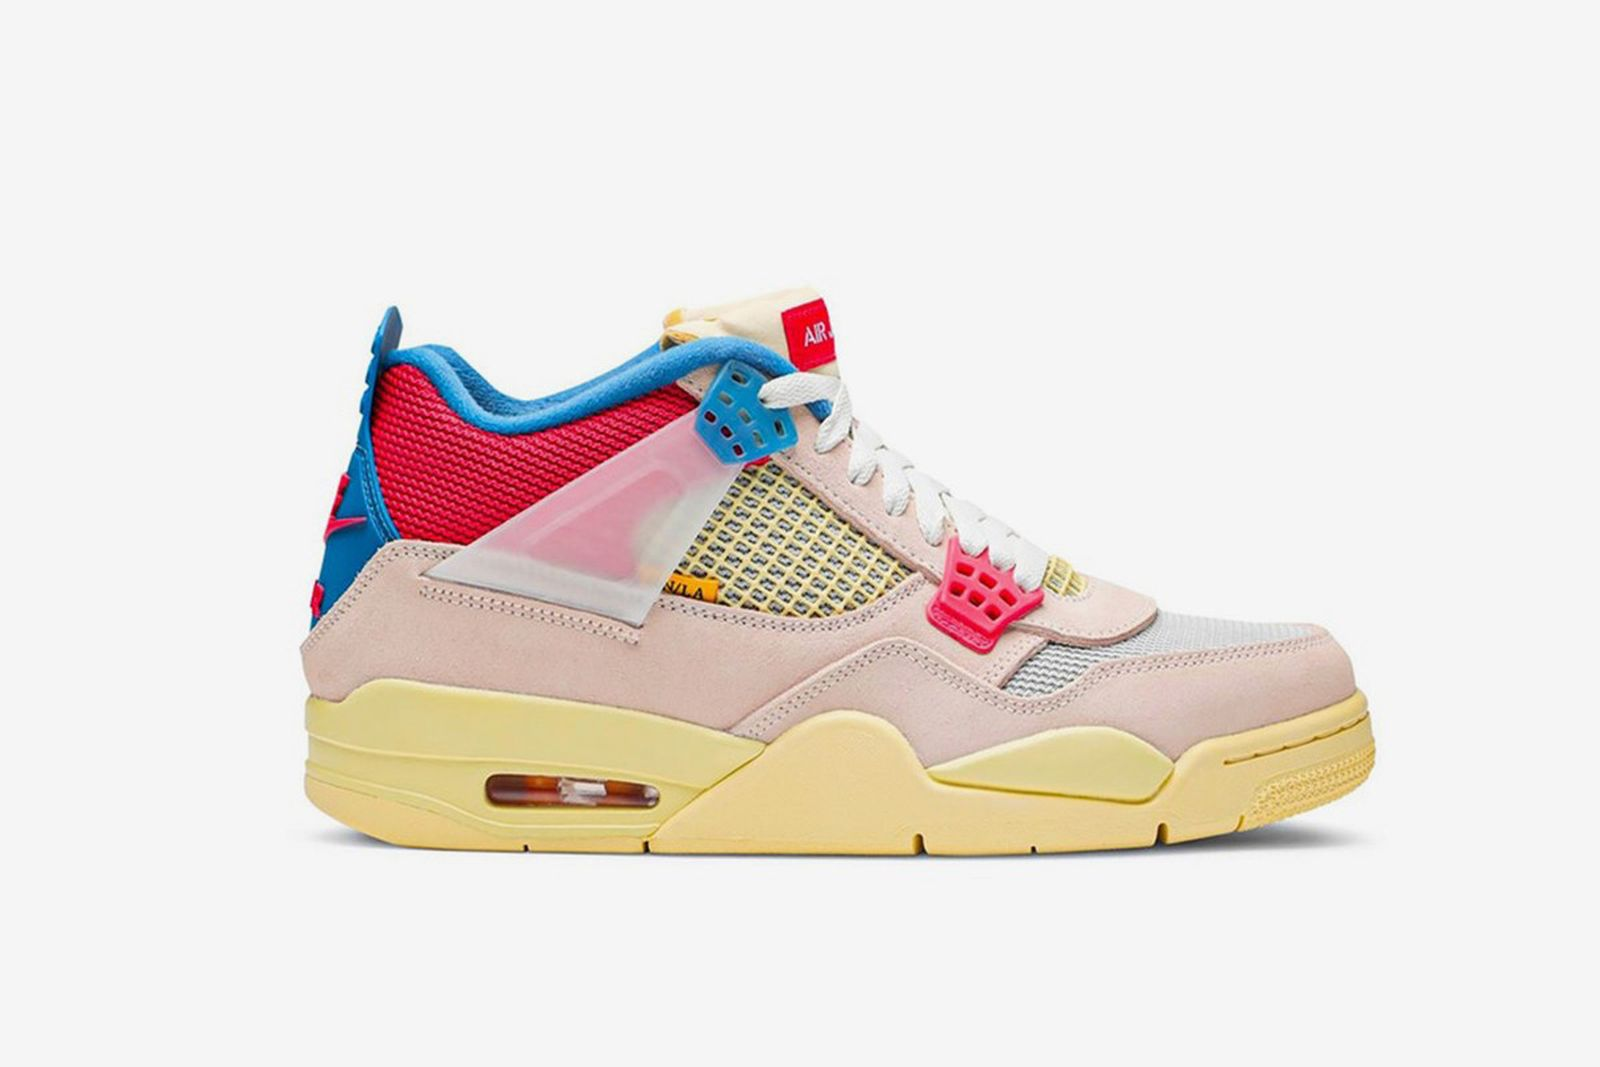 morir cortar Otoño  Where to Buy the Union x Nike Air Jordan 4